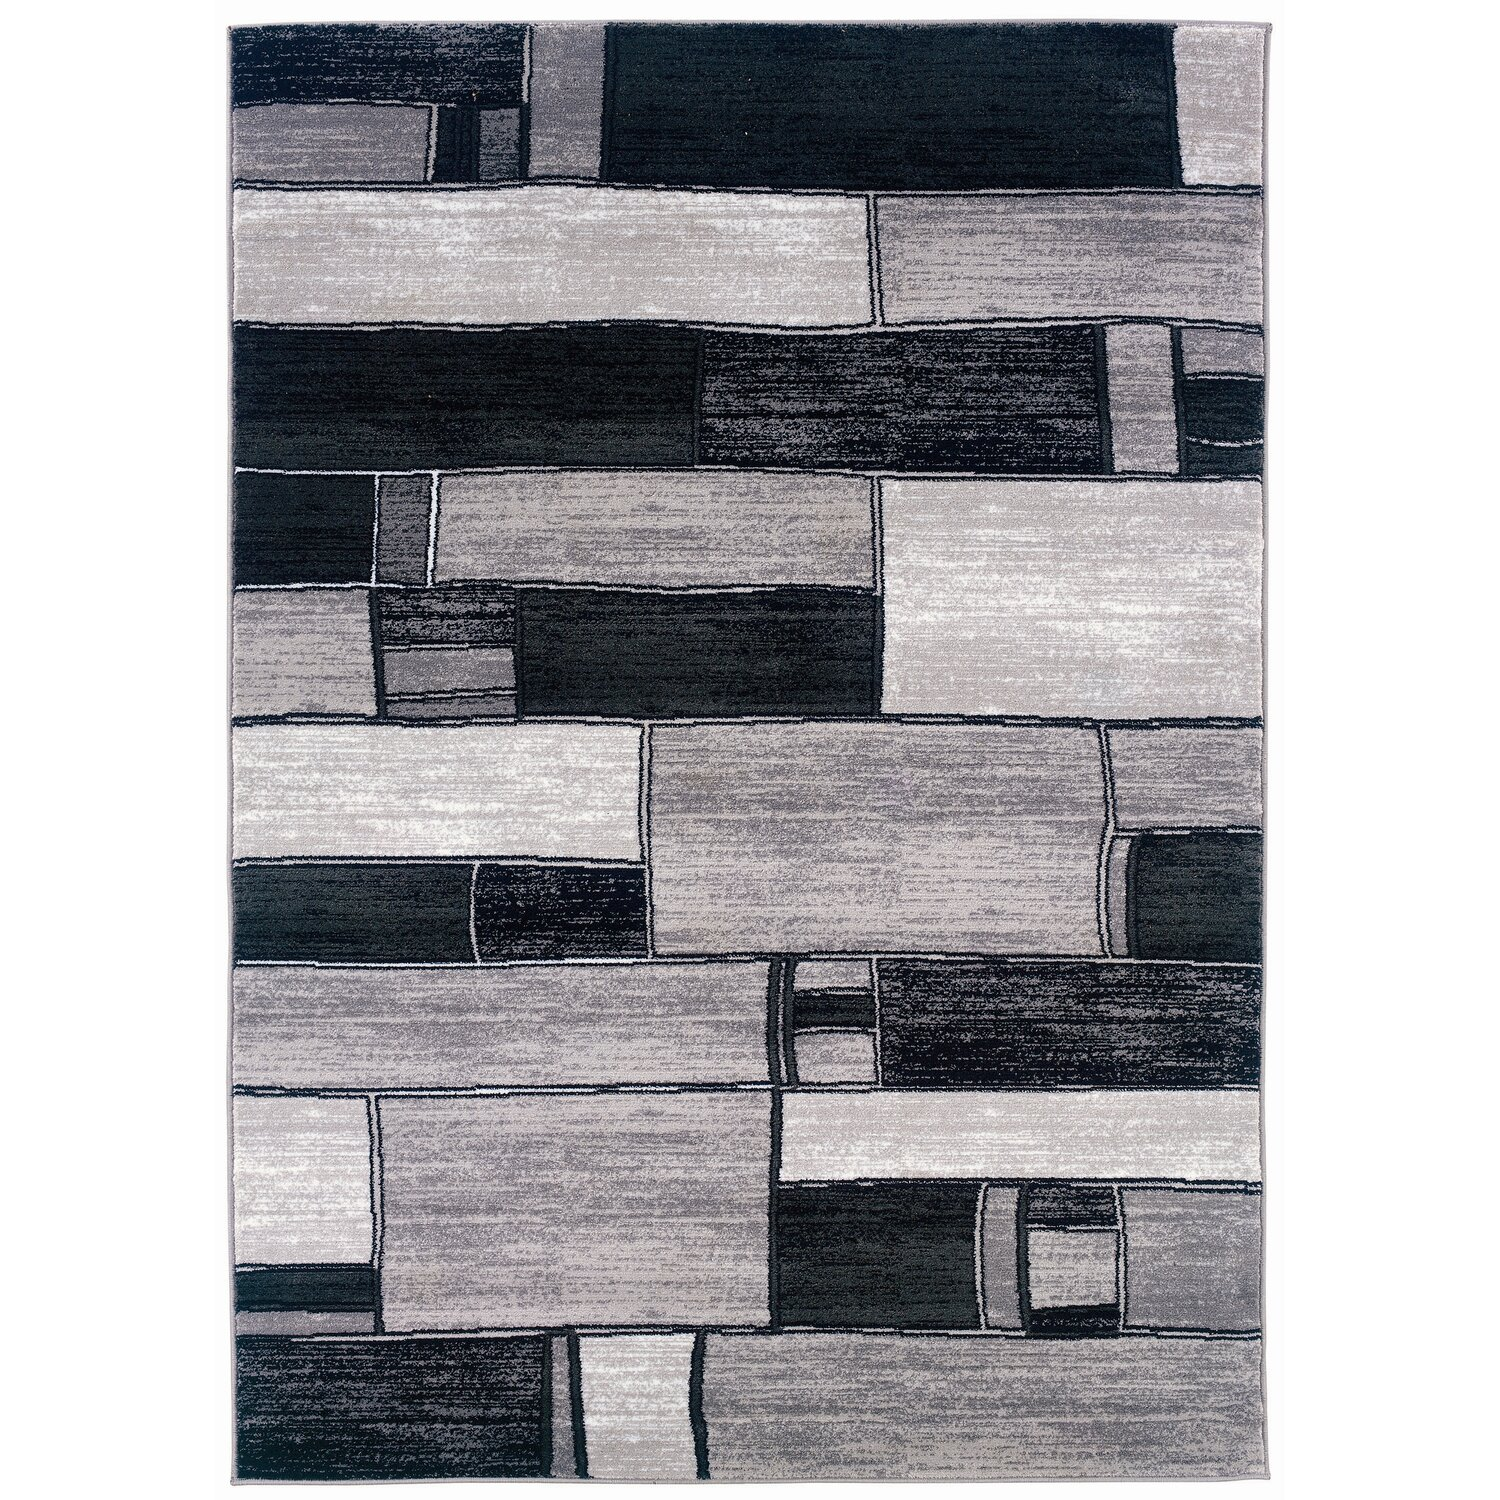 Art Resources Rugs #15